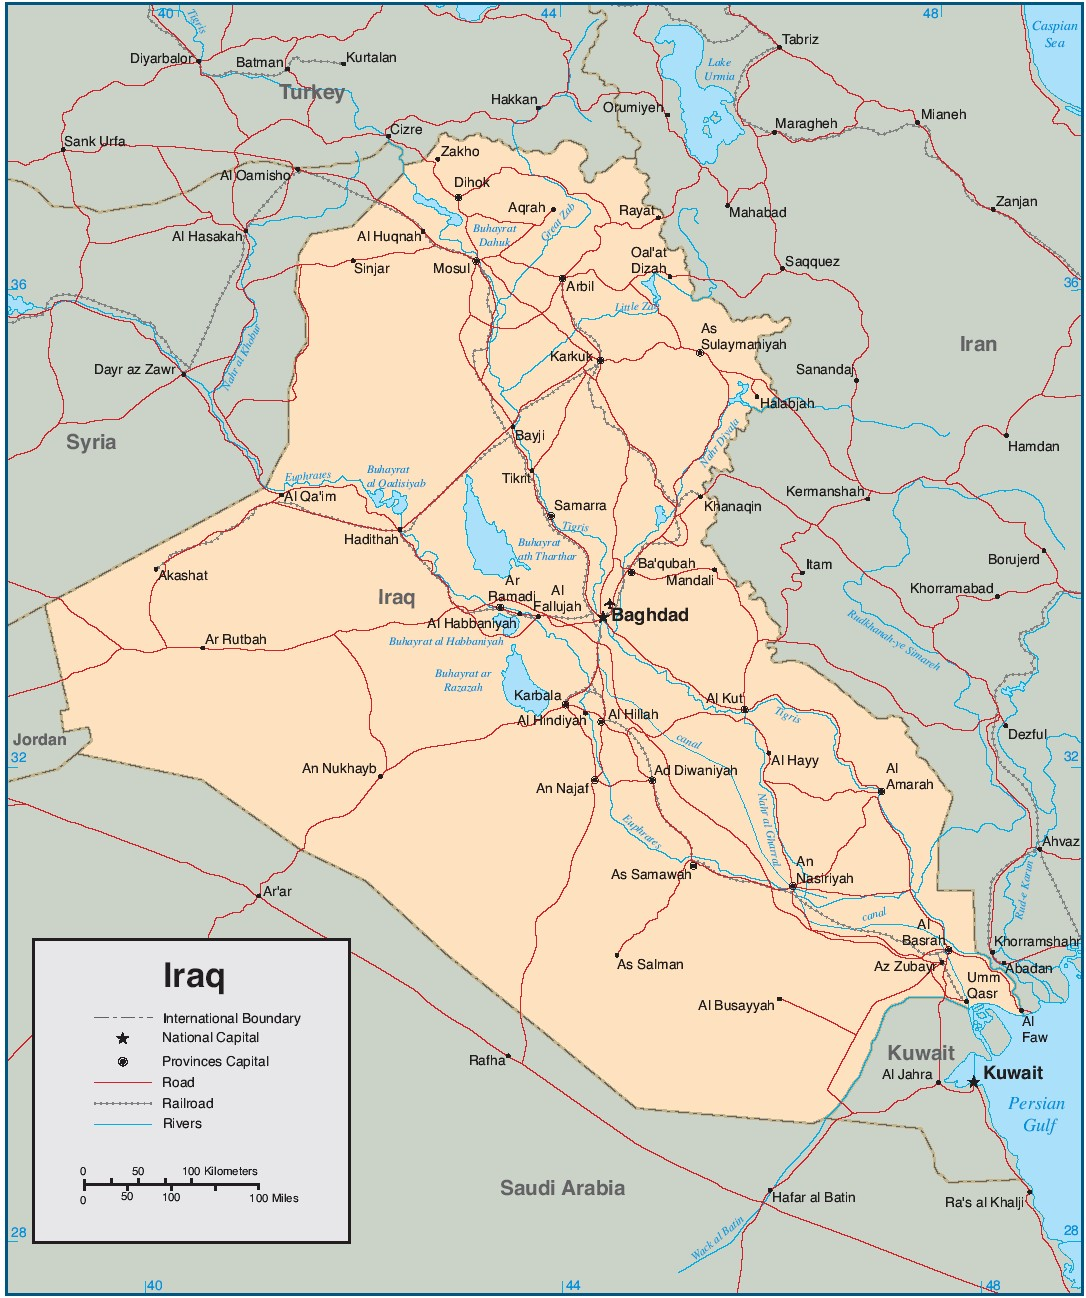 Map Of Iraq Military Pictures to Pin on Pinterest PinsDaddy